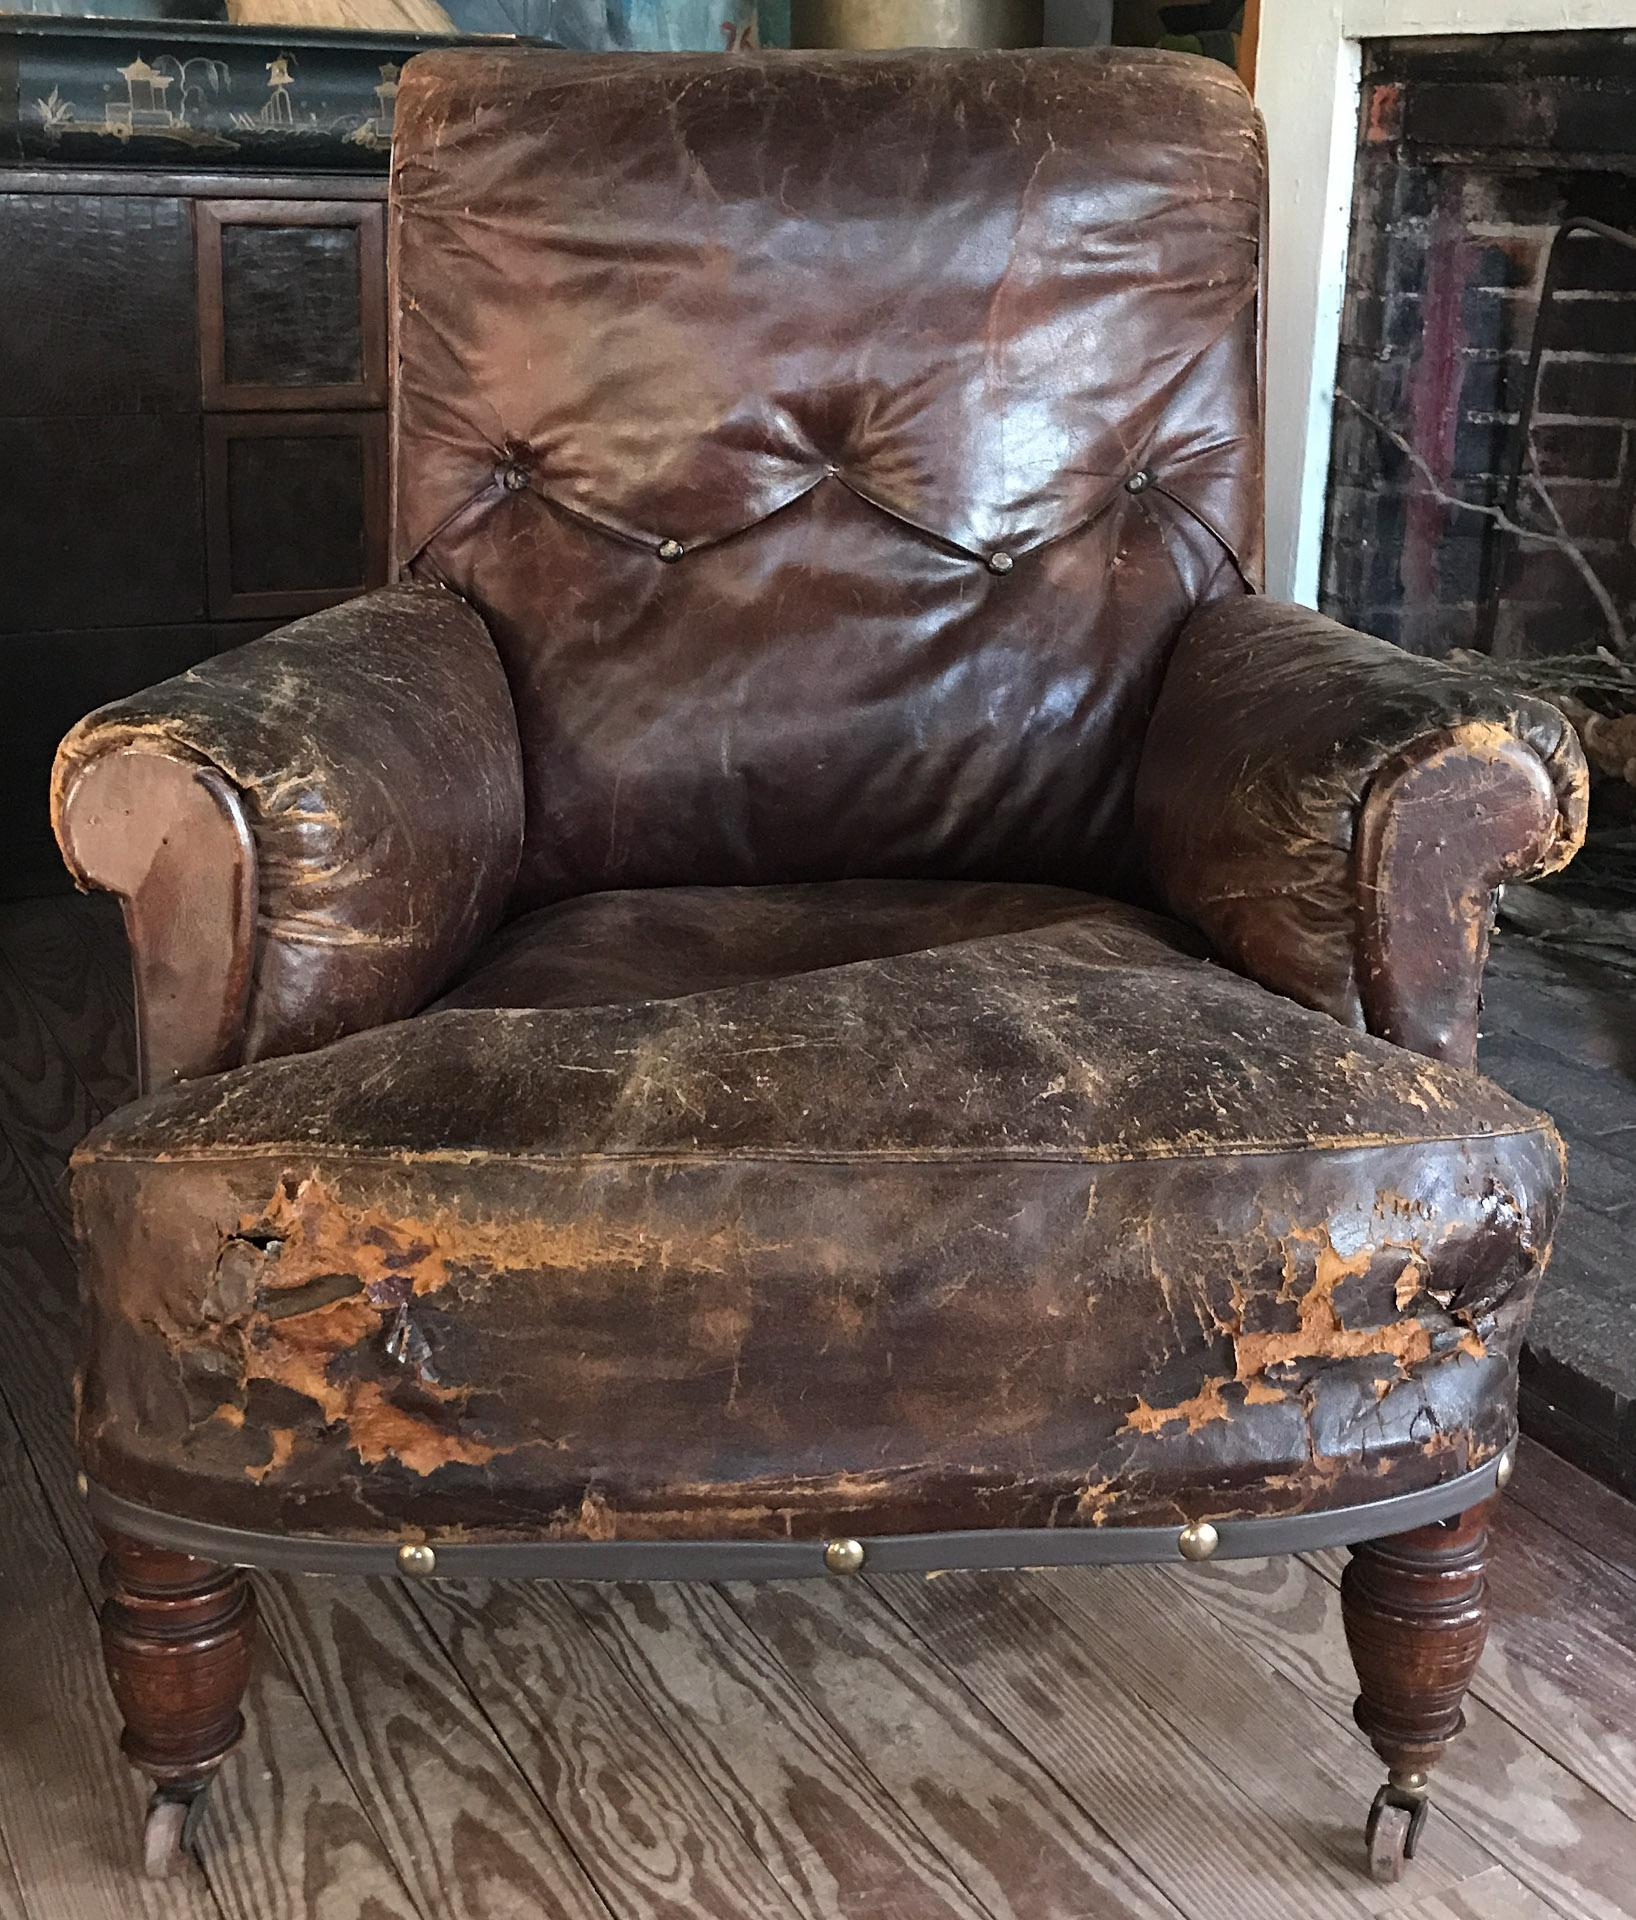 Distressed Is The Operative Word To Describe This Cool Old Leather Chair.  We See It